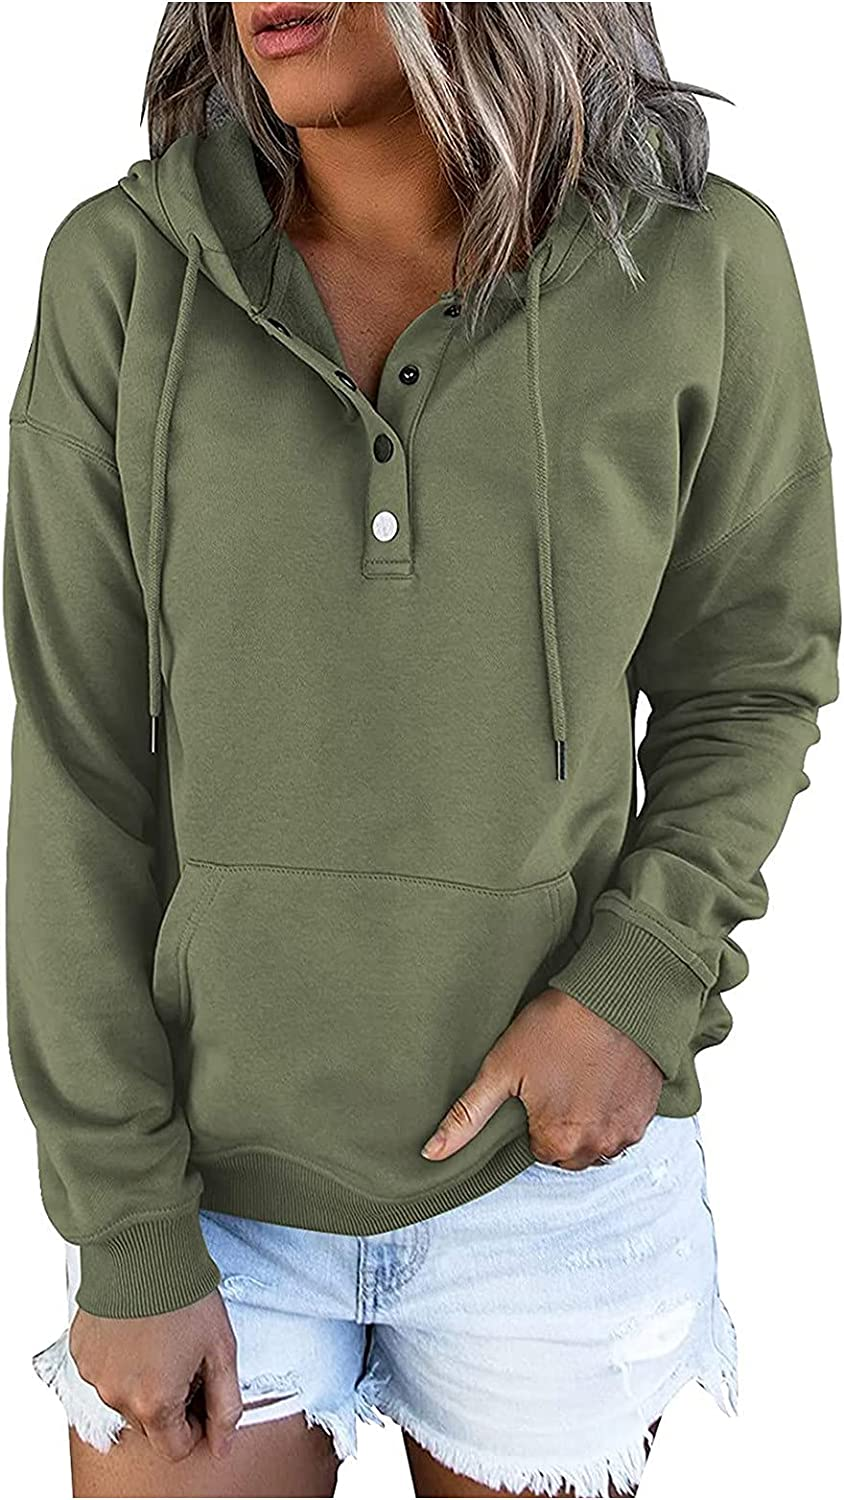 Superior Women's New Free Shipping Casual Hoodies Color Block Oversize Drawstri Sleeve Long